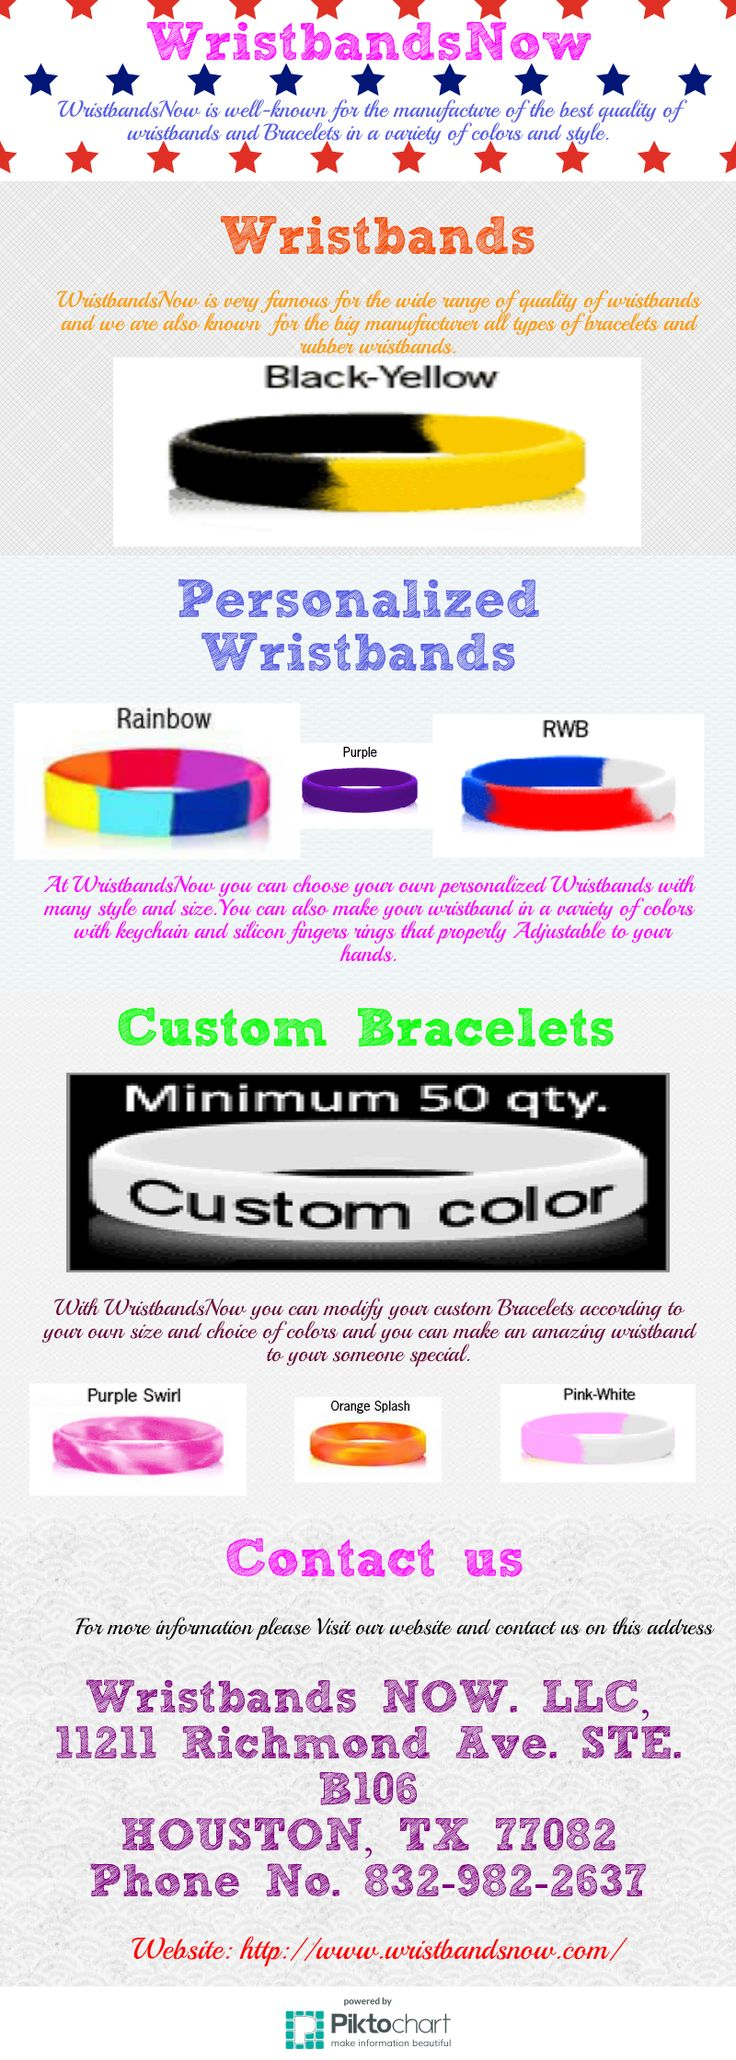 Find This Pin And More On Personalized Wristbands